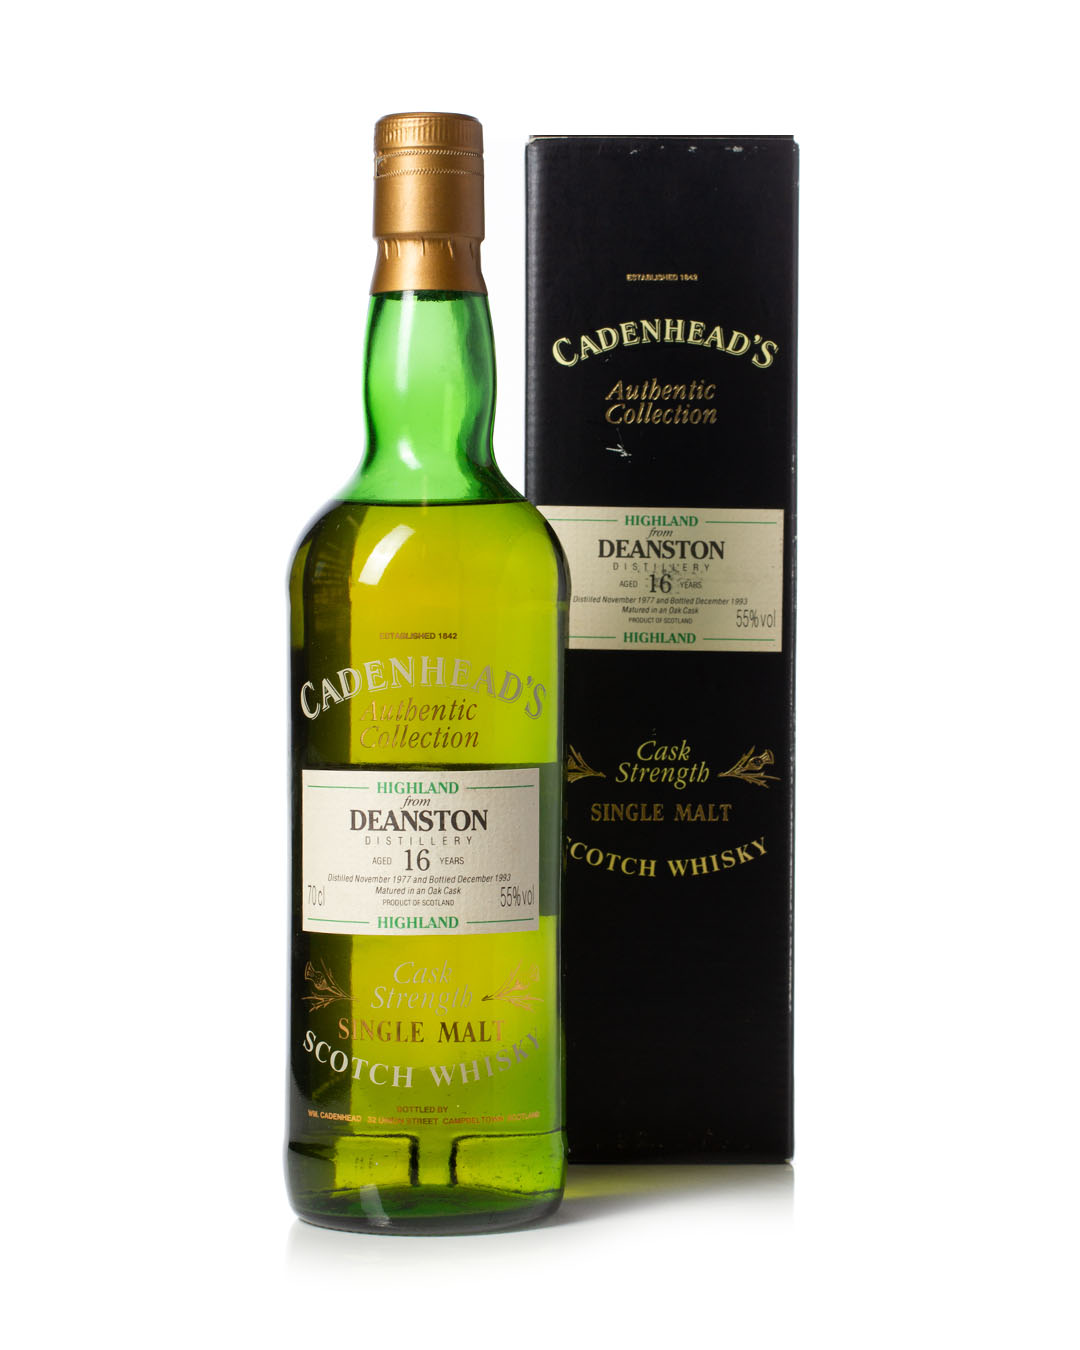 Buy Deanston 1977 16 Year Old Cadenhead's Authentic Collection whisky online